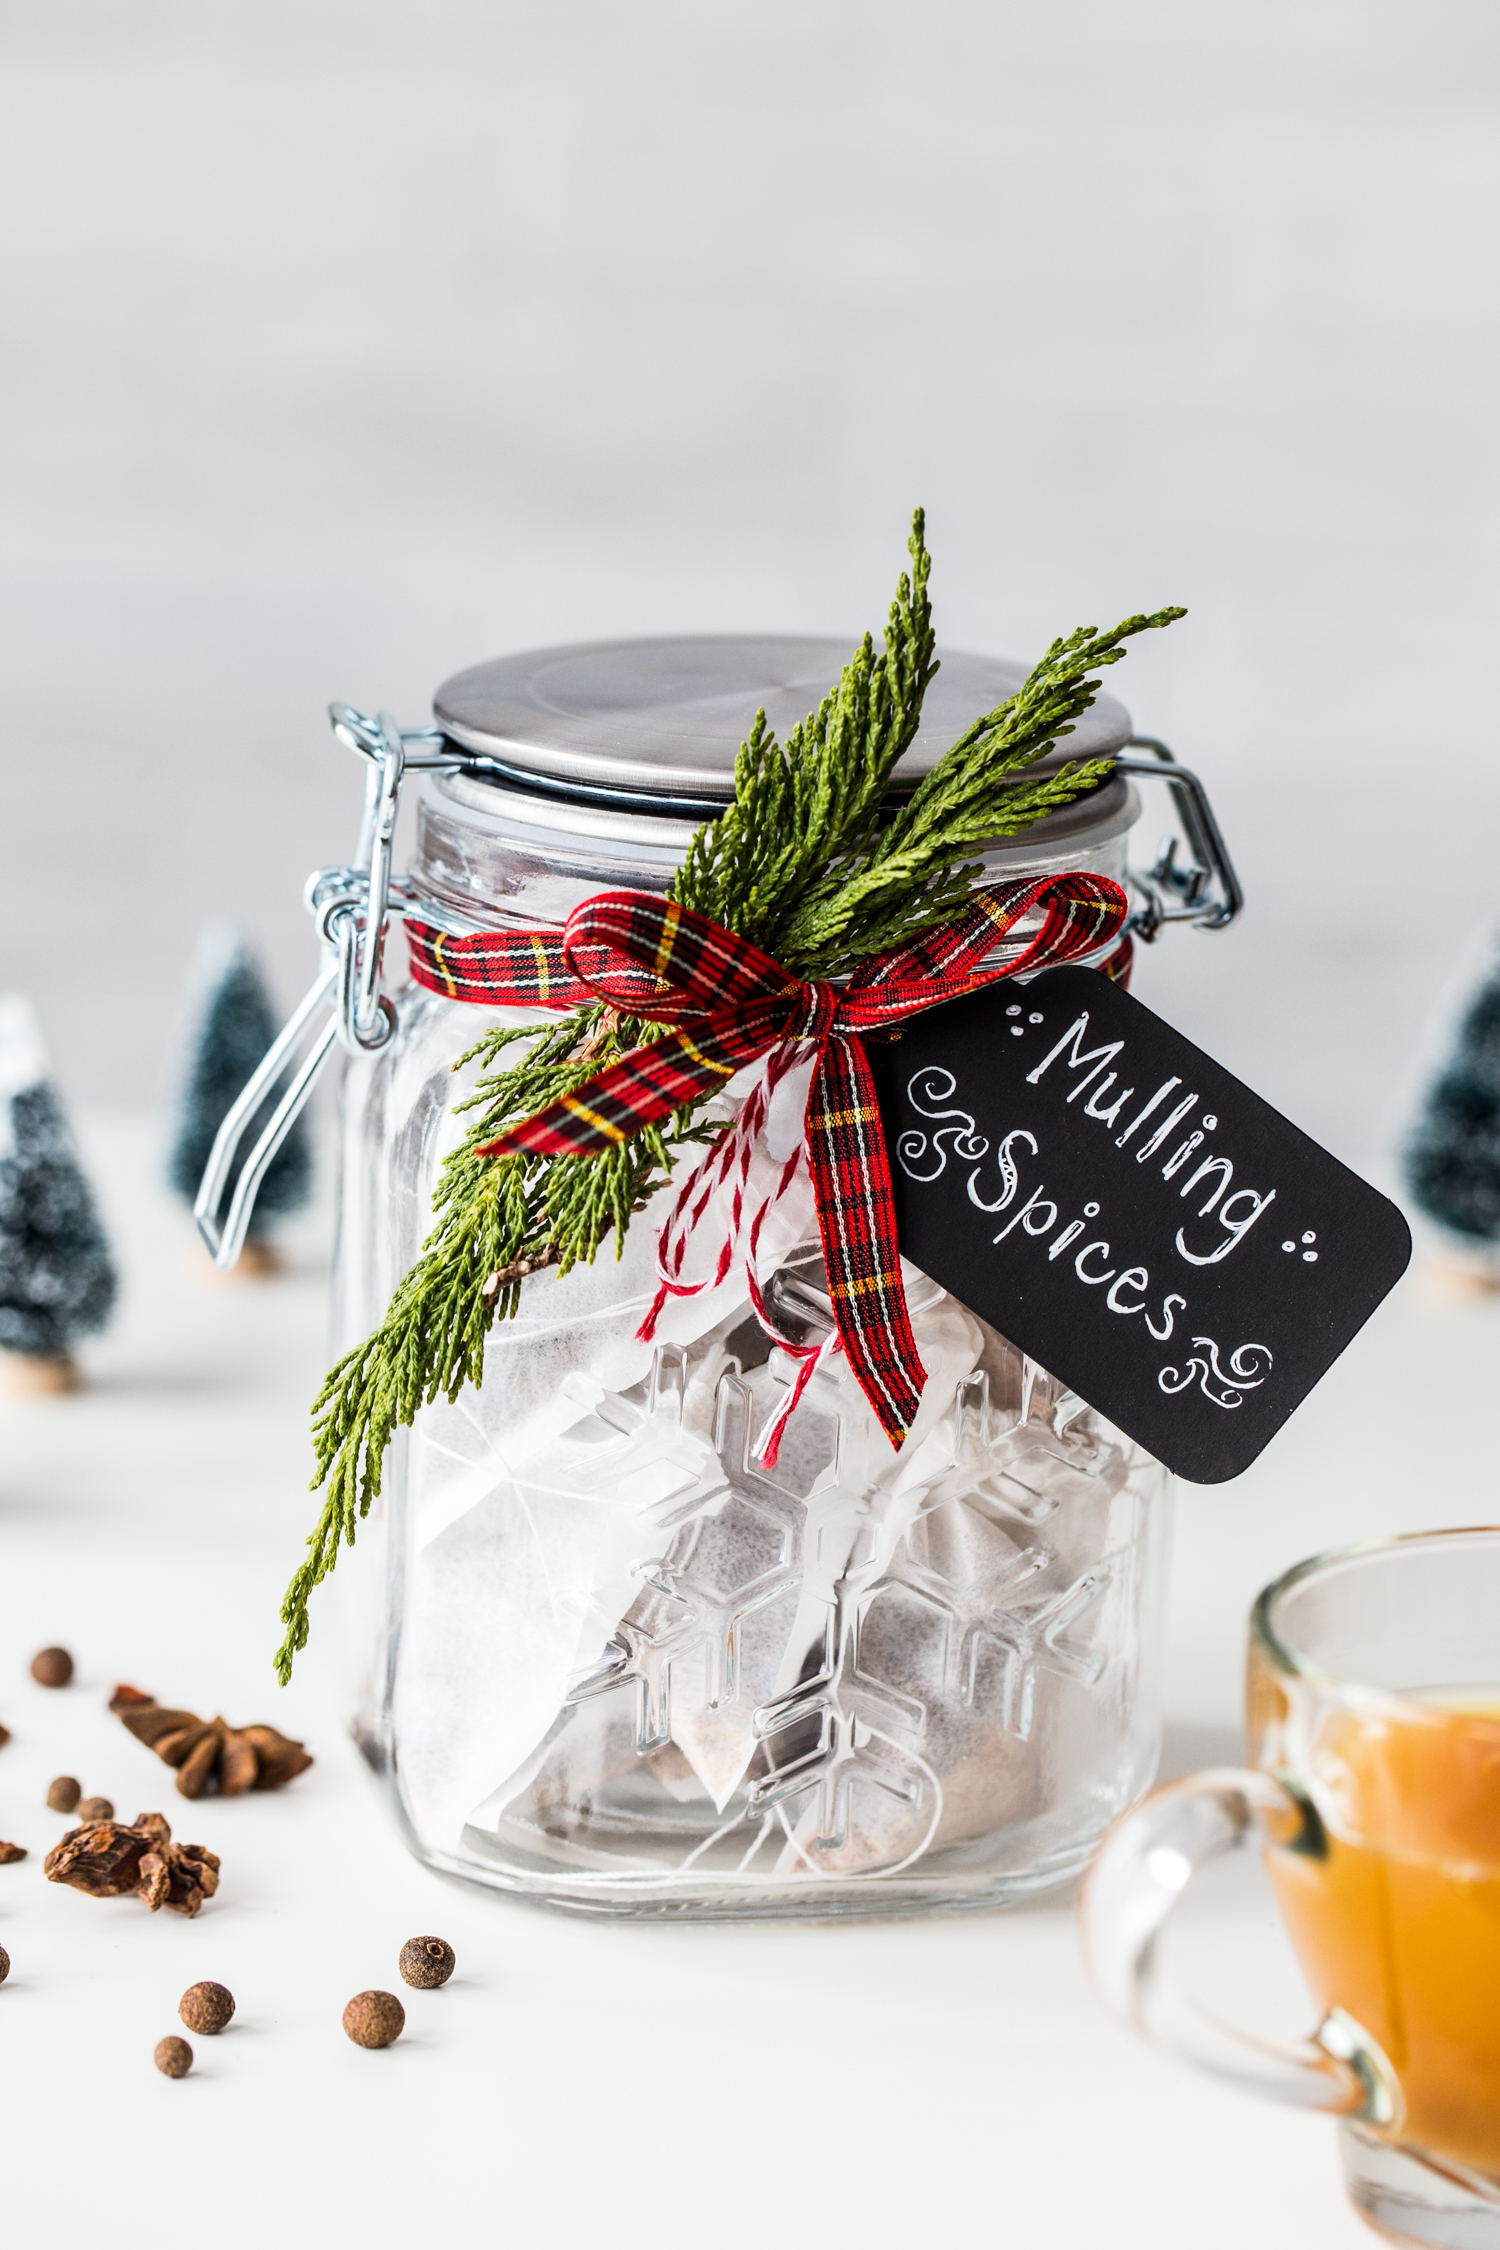 Homemade Holiday Mulling Spices make a great DIY hostess gift